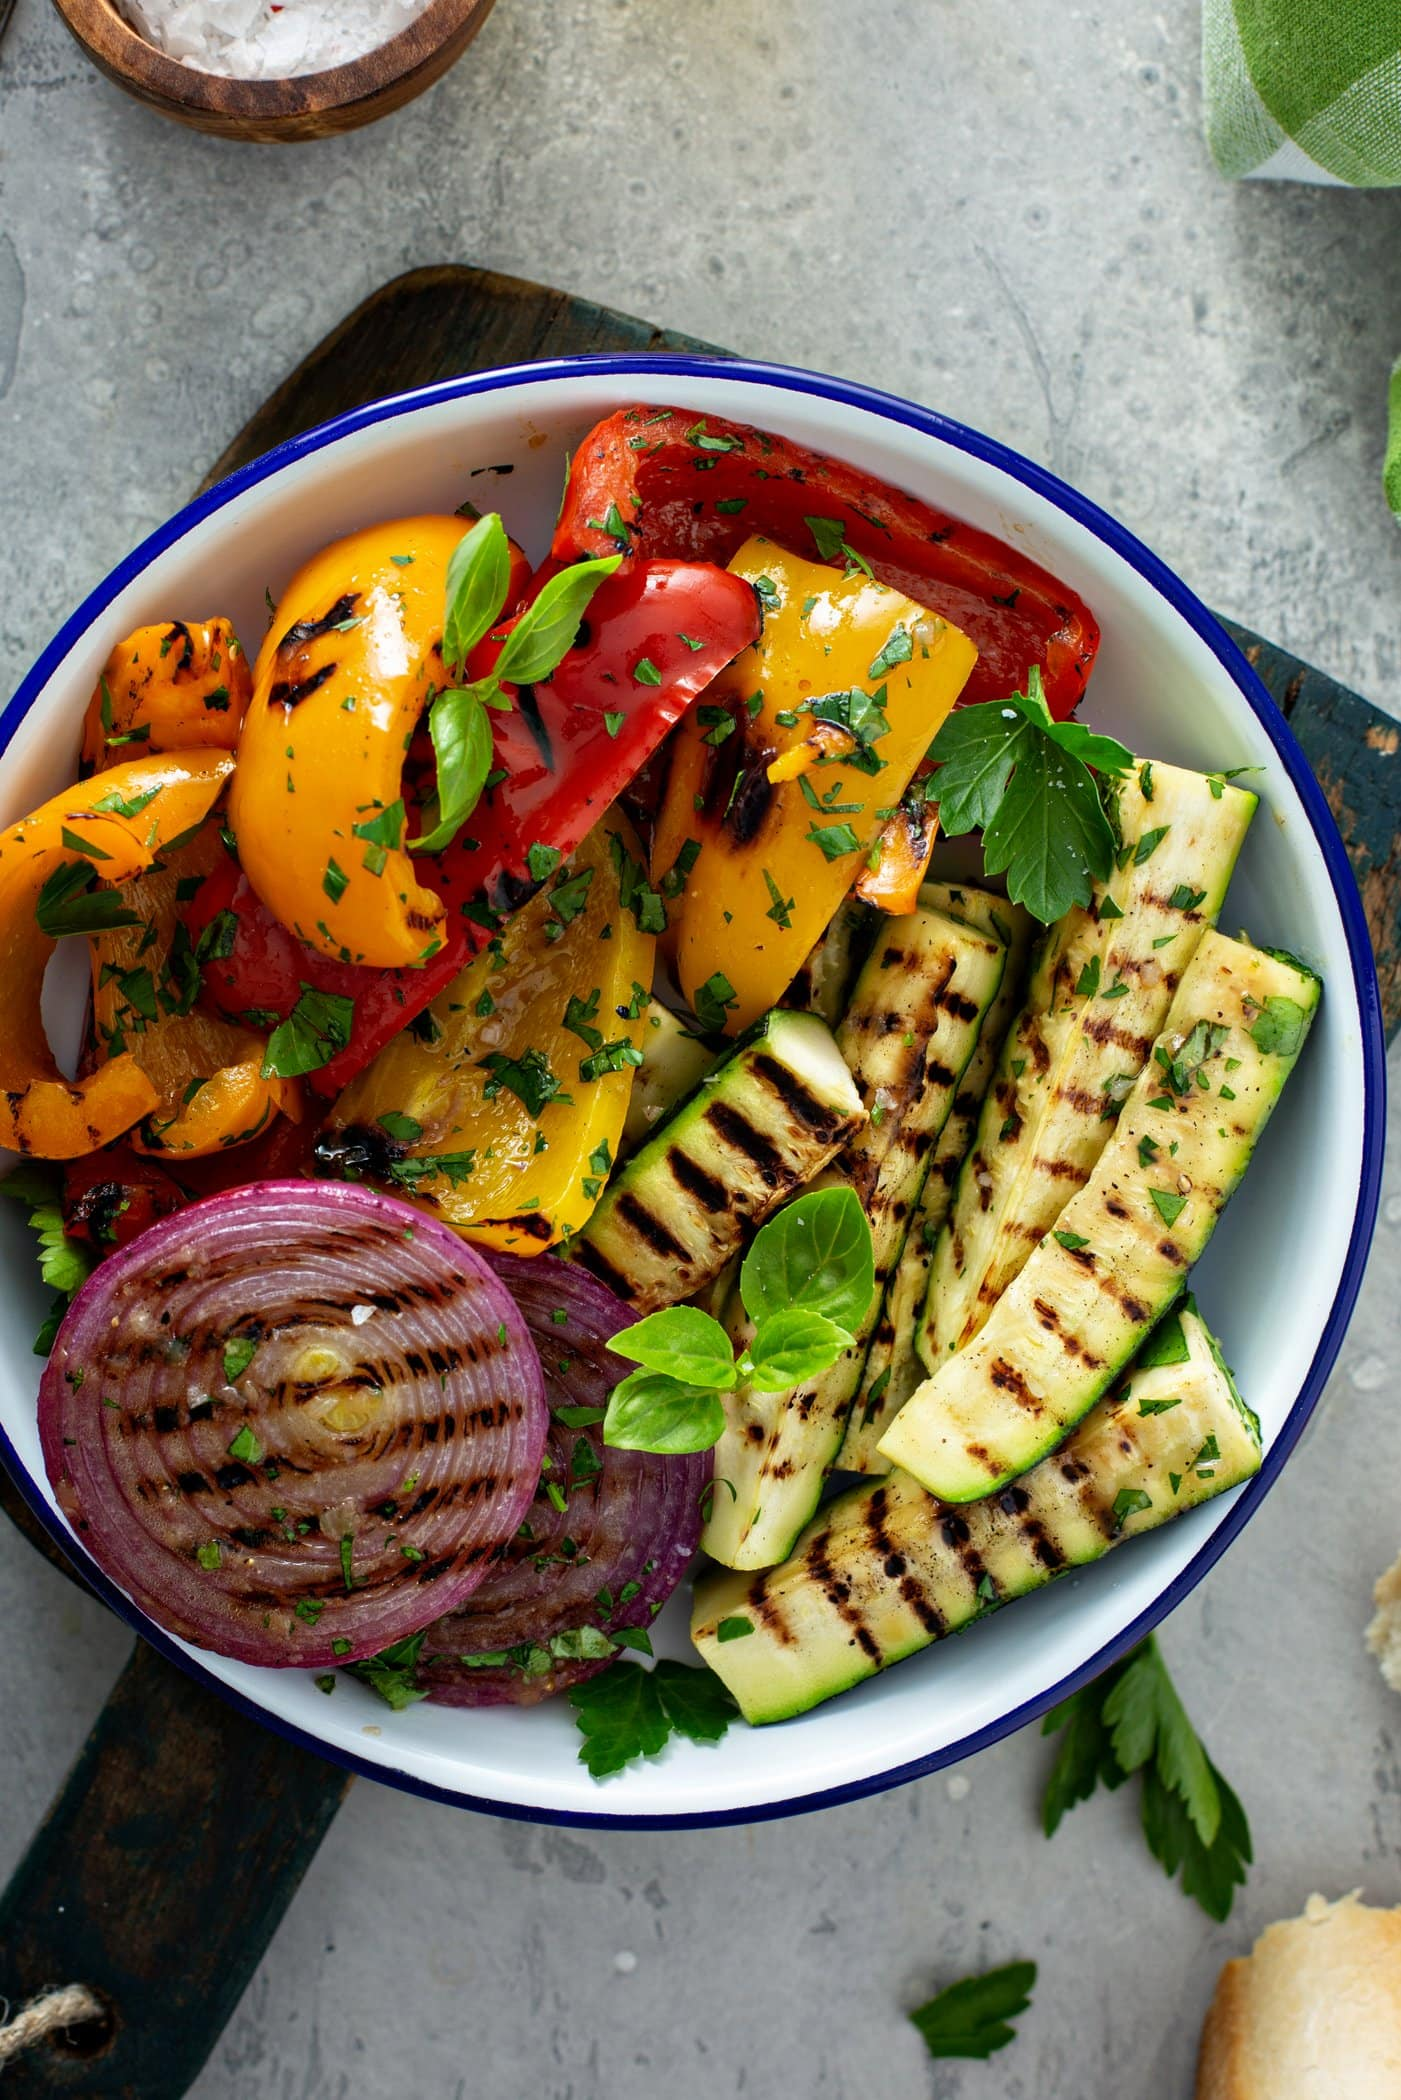 A serving dish of grilled veggies. The red onion slices, zucchini wedges and sliced red and yellow bell peppers have light brown grill marks and the veggies are sprinkled with parsley leaves.